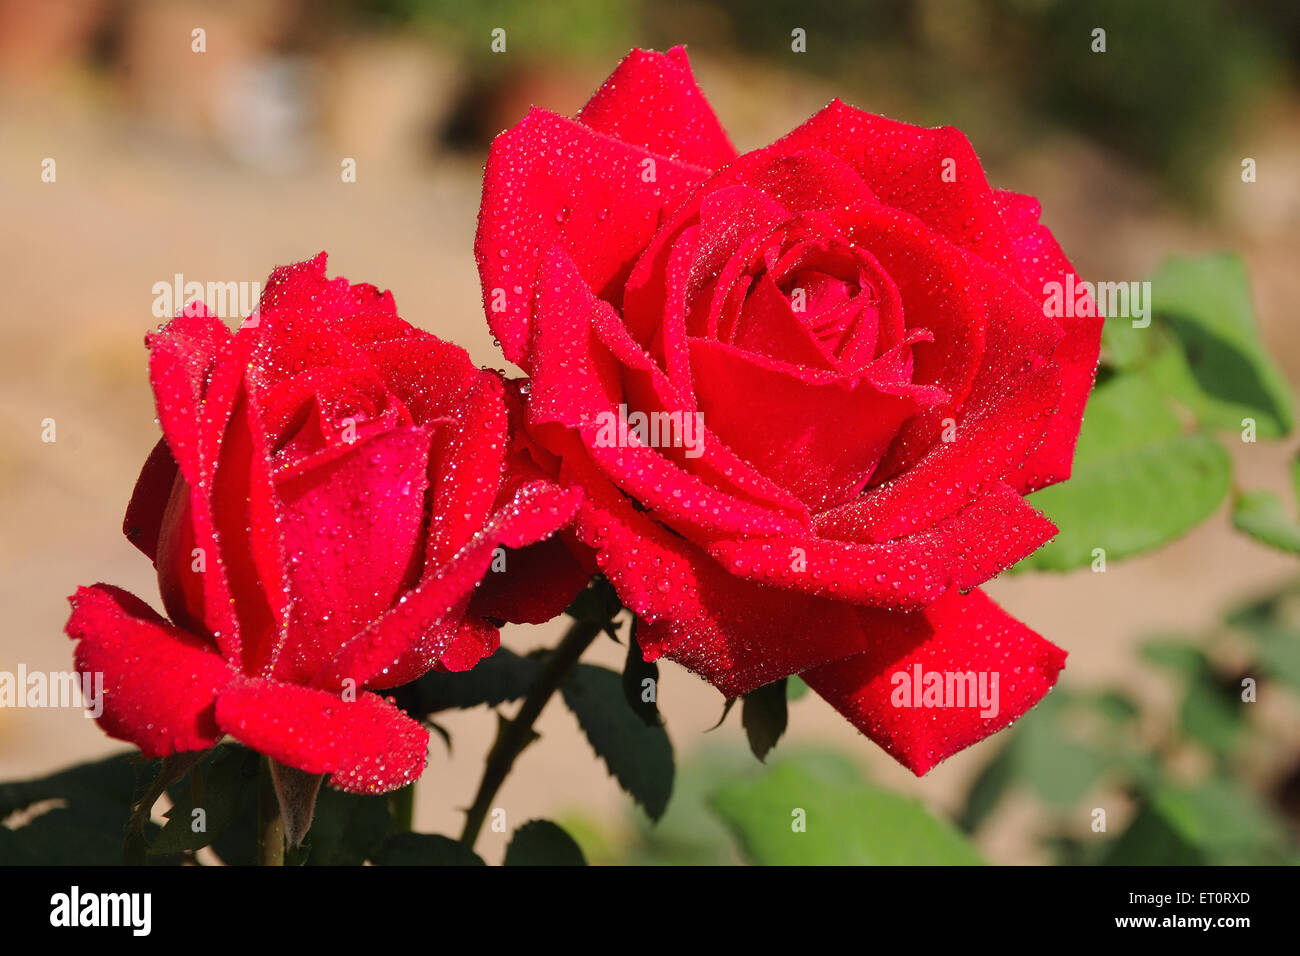 Dewdrops on roses - Stock Image